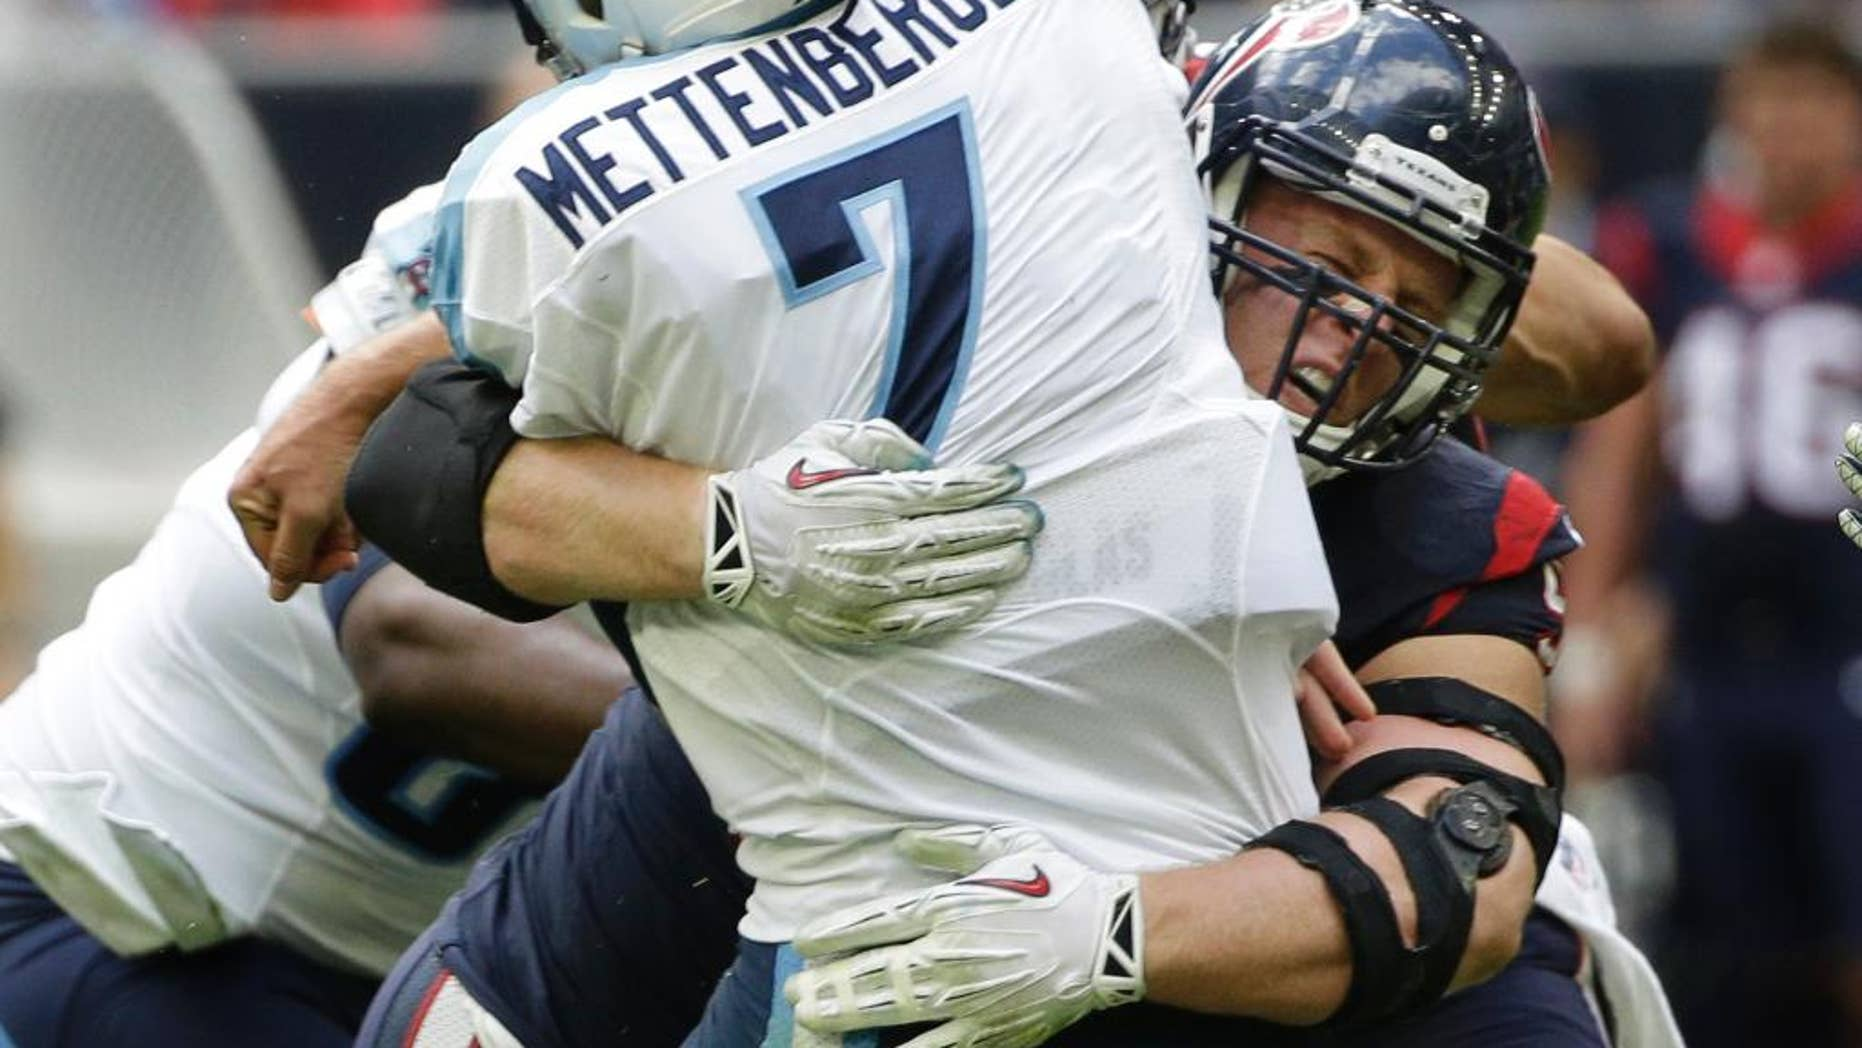 Houston Texans defensive end J.J. Watt tackles Tennessee Titans quarterback Zach Mettenberger (7) during the first half of an NFL football game Sunday, Nov. 30, 2014, in Houston. (AP Photo/David J. Phillip)